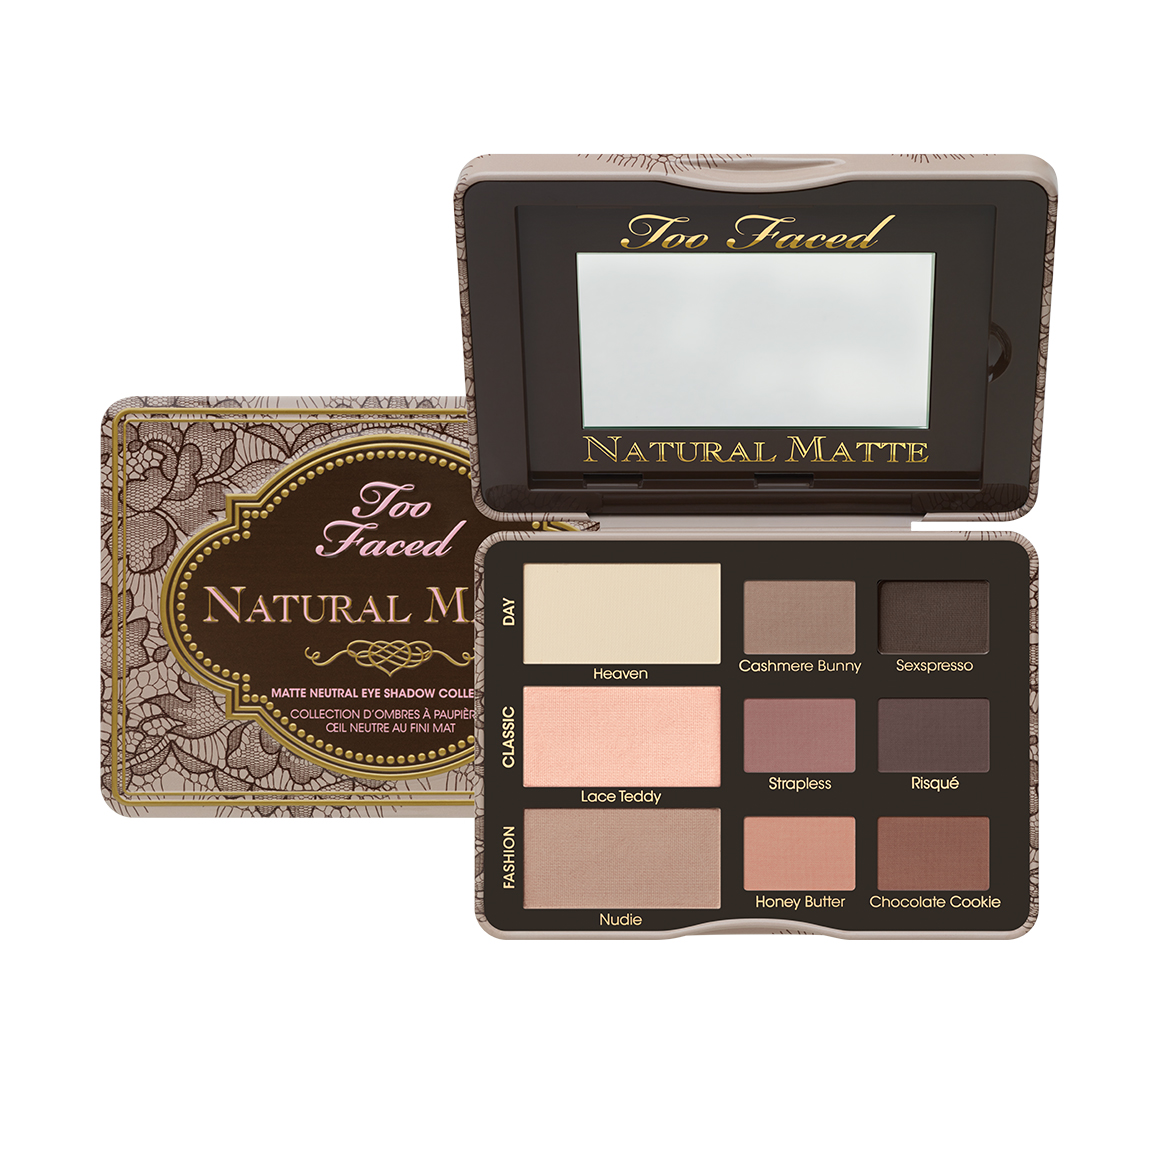 w Too Faced Natural Matte Eye Palette - best eyeshadow palettes for beginners